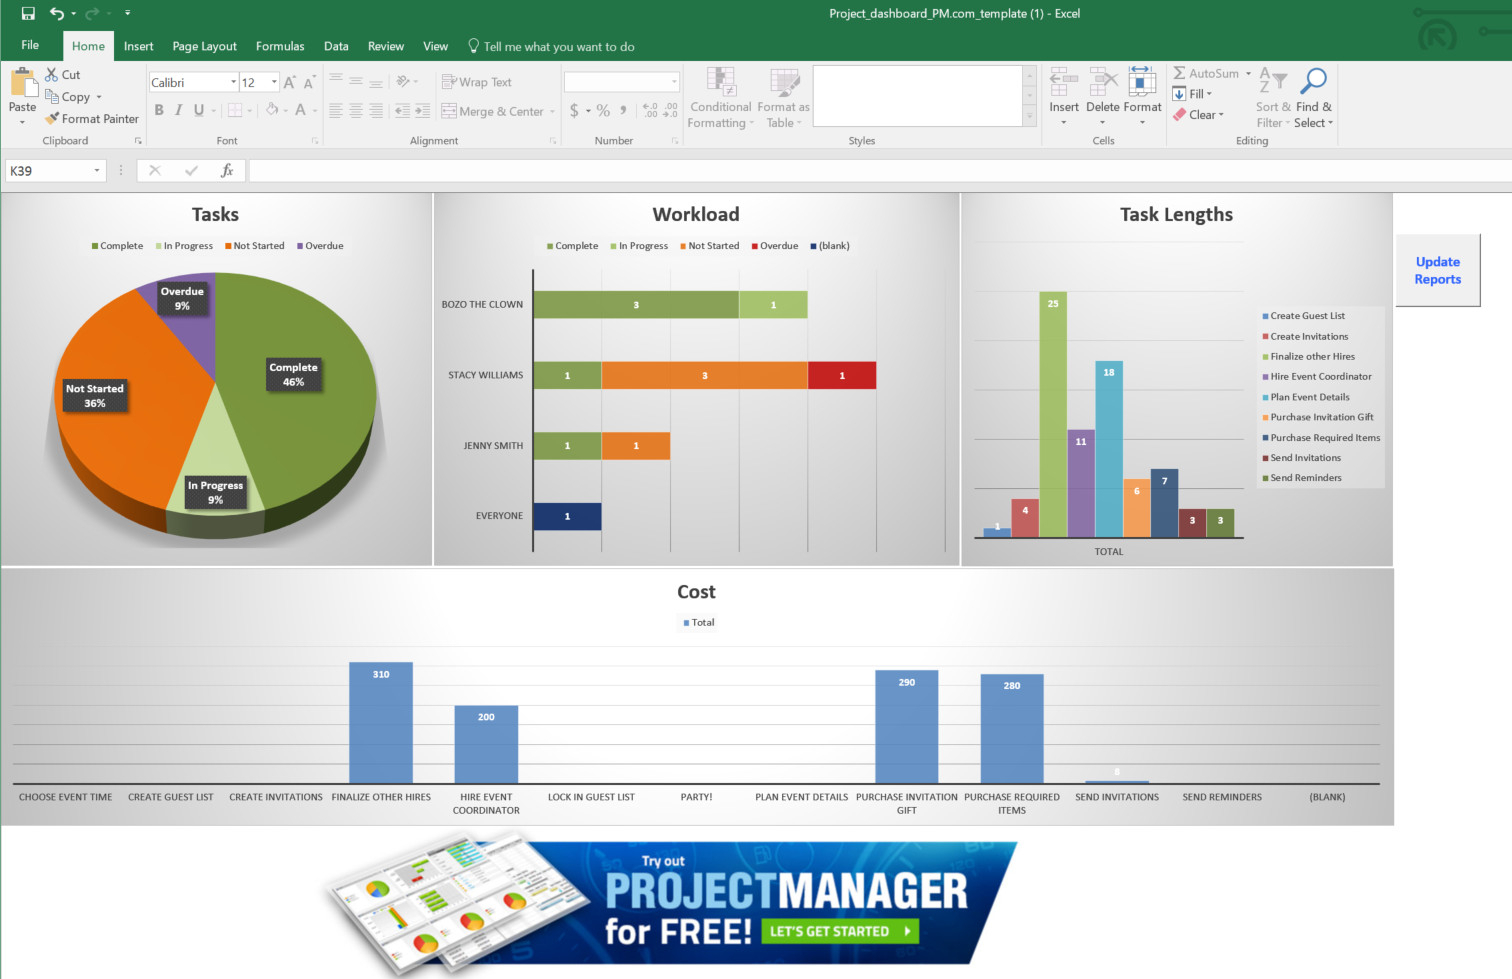 Guide To Excel Project Management - Projectmanager Within Project Management Spreadsheet Microsoft Excel